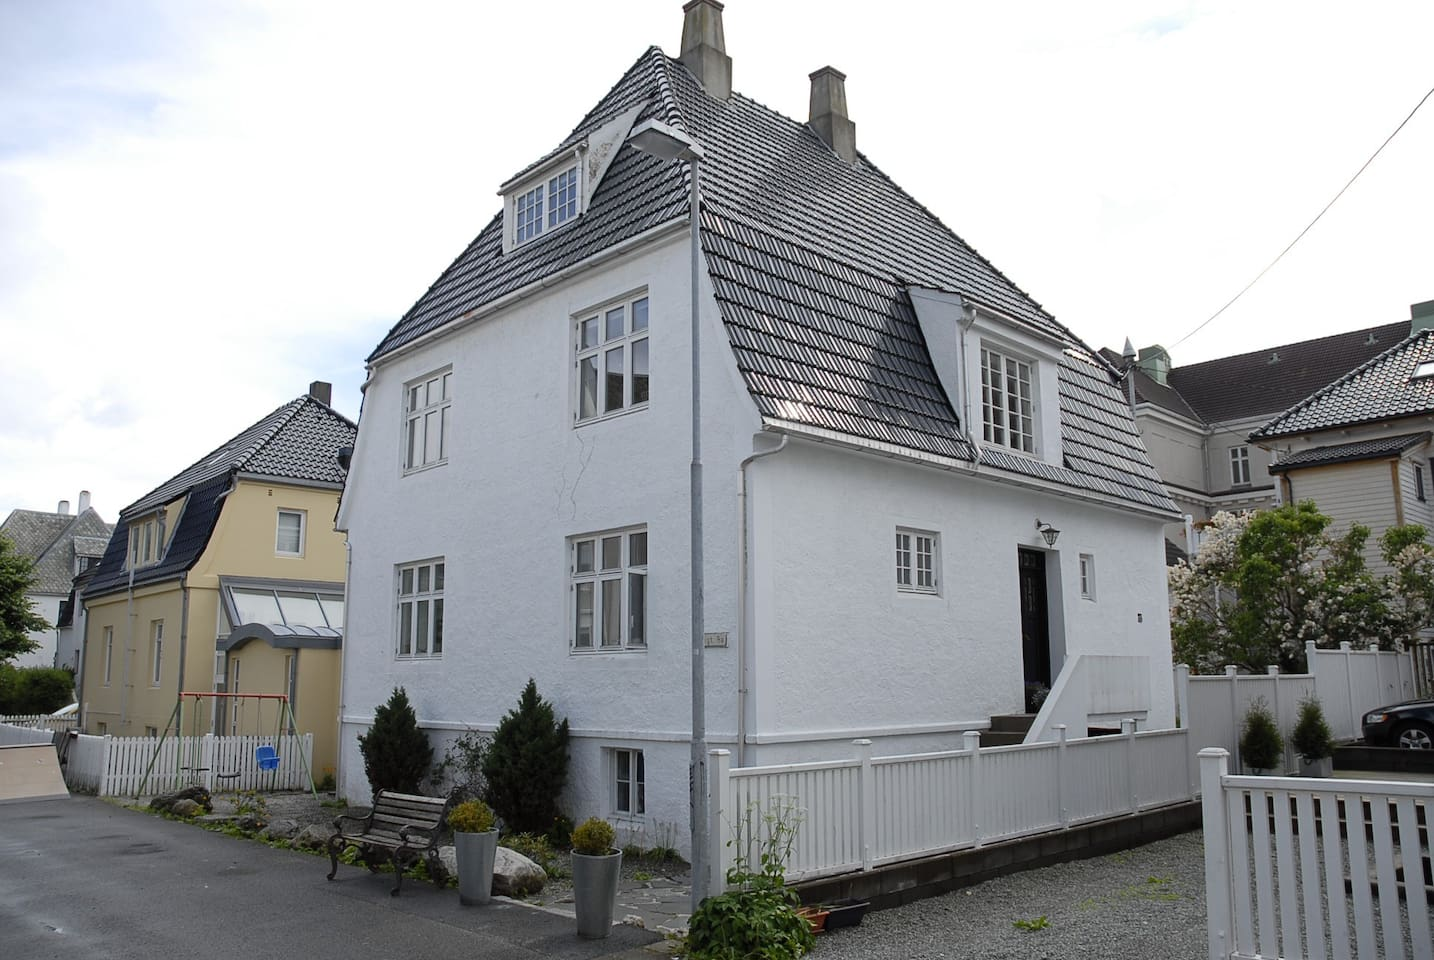 Jugend house built in 1920.